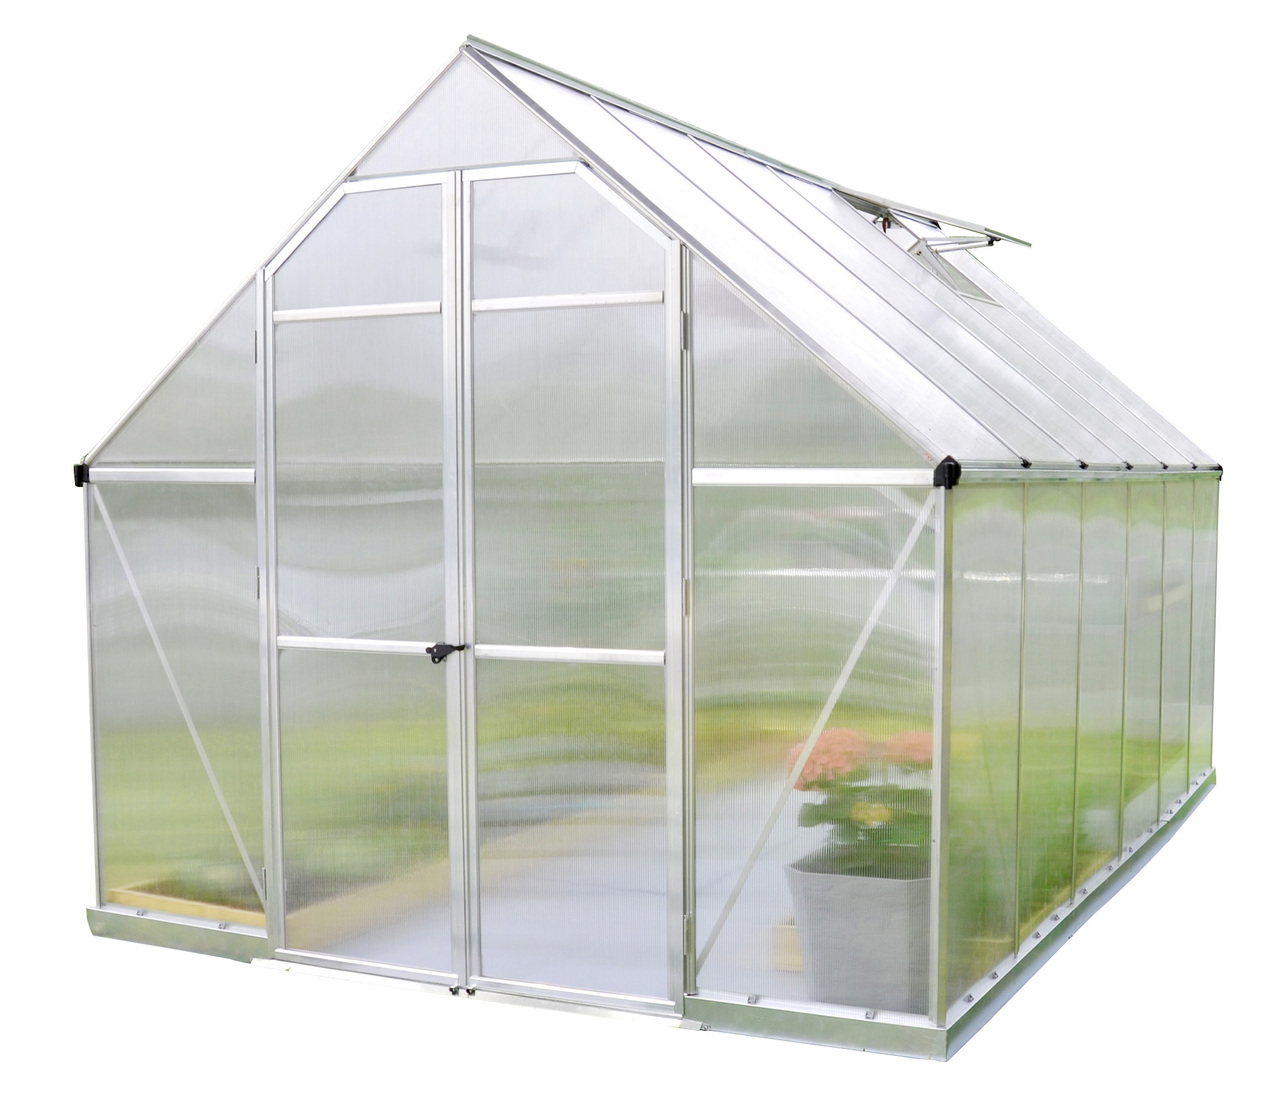 Essence 8' x 12' Hobby Greenhouse, Silver